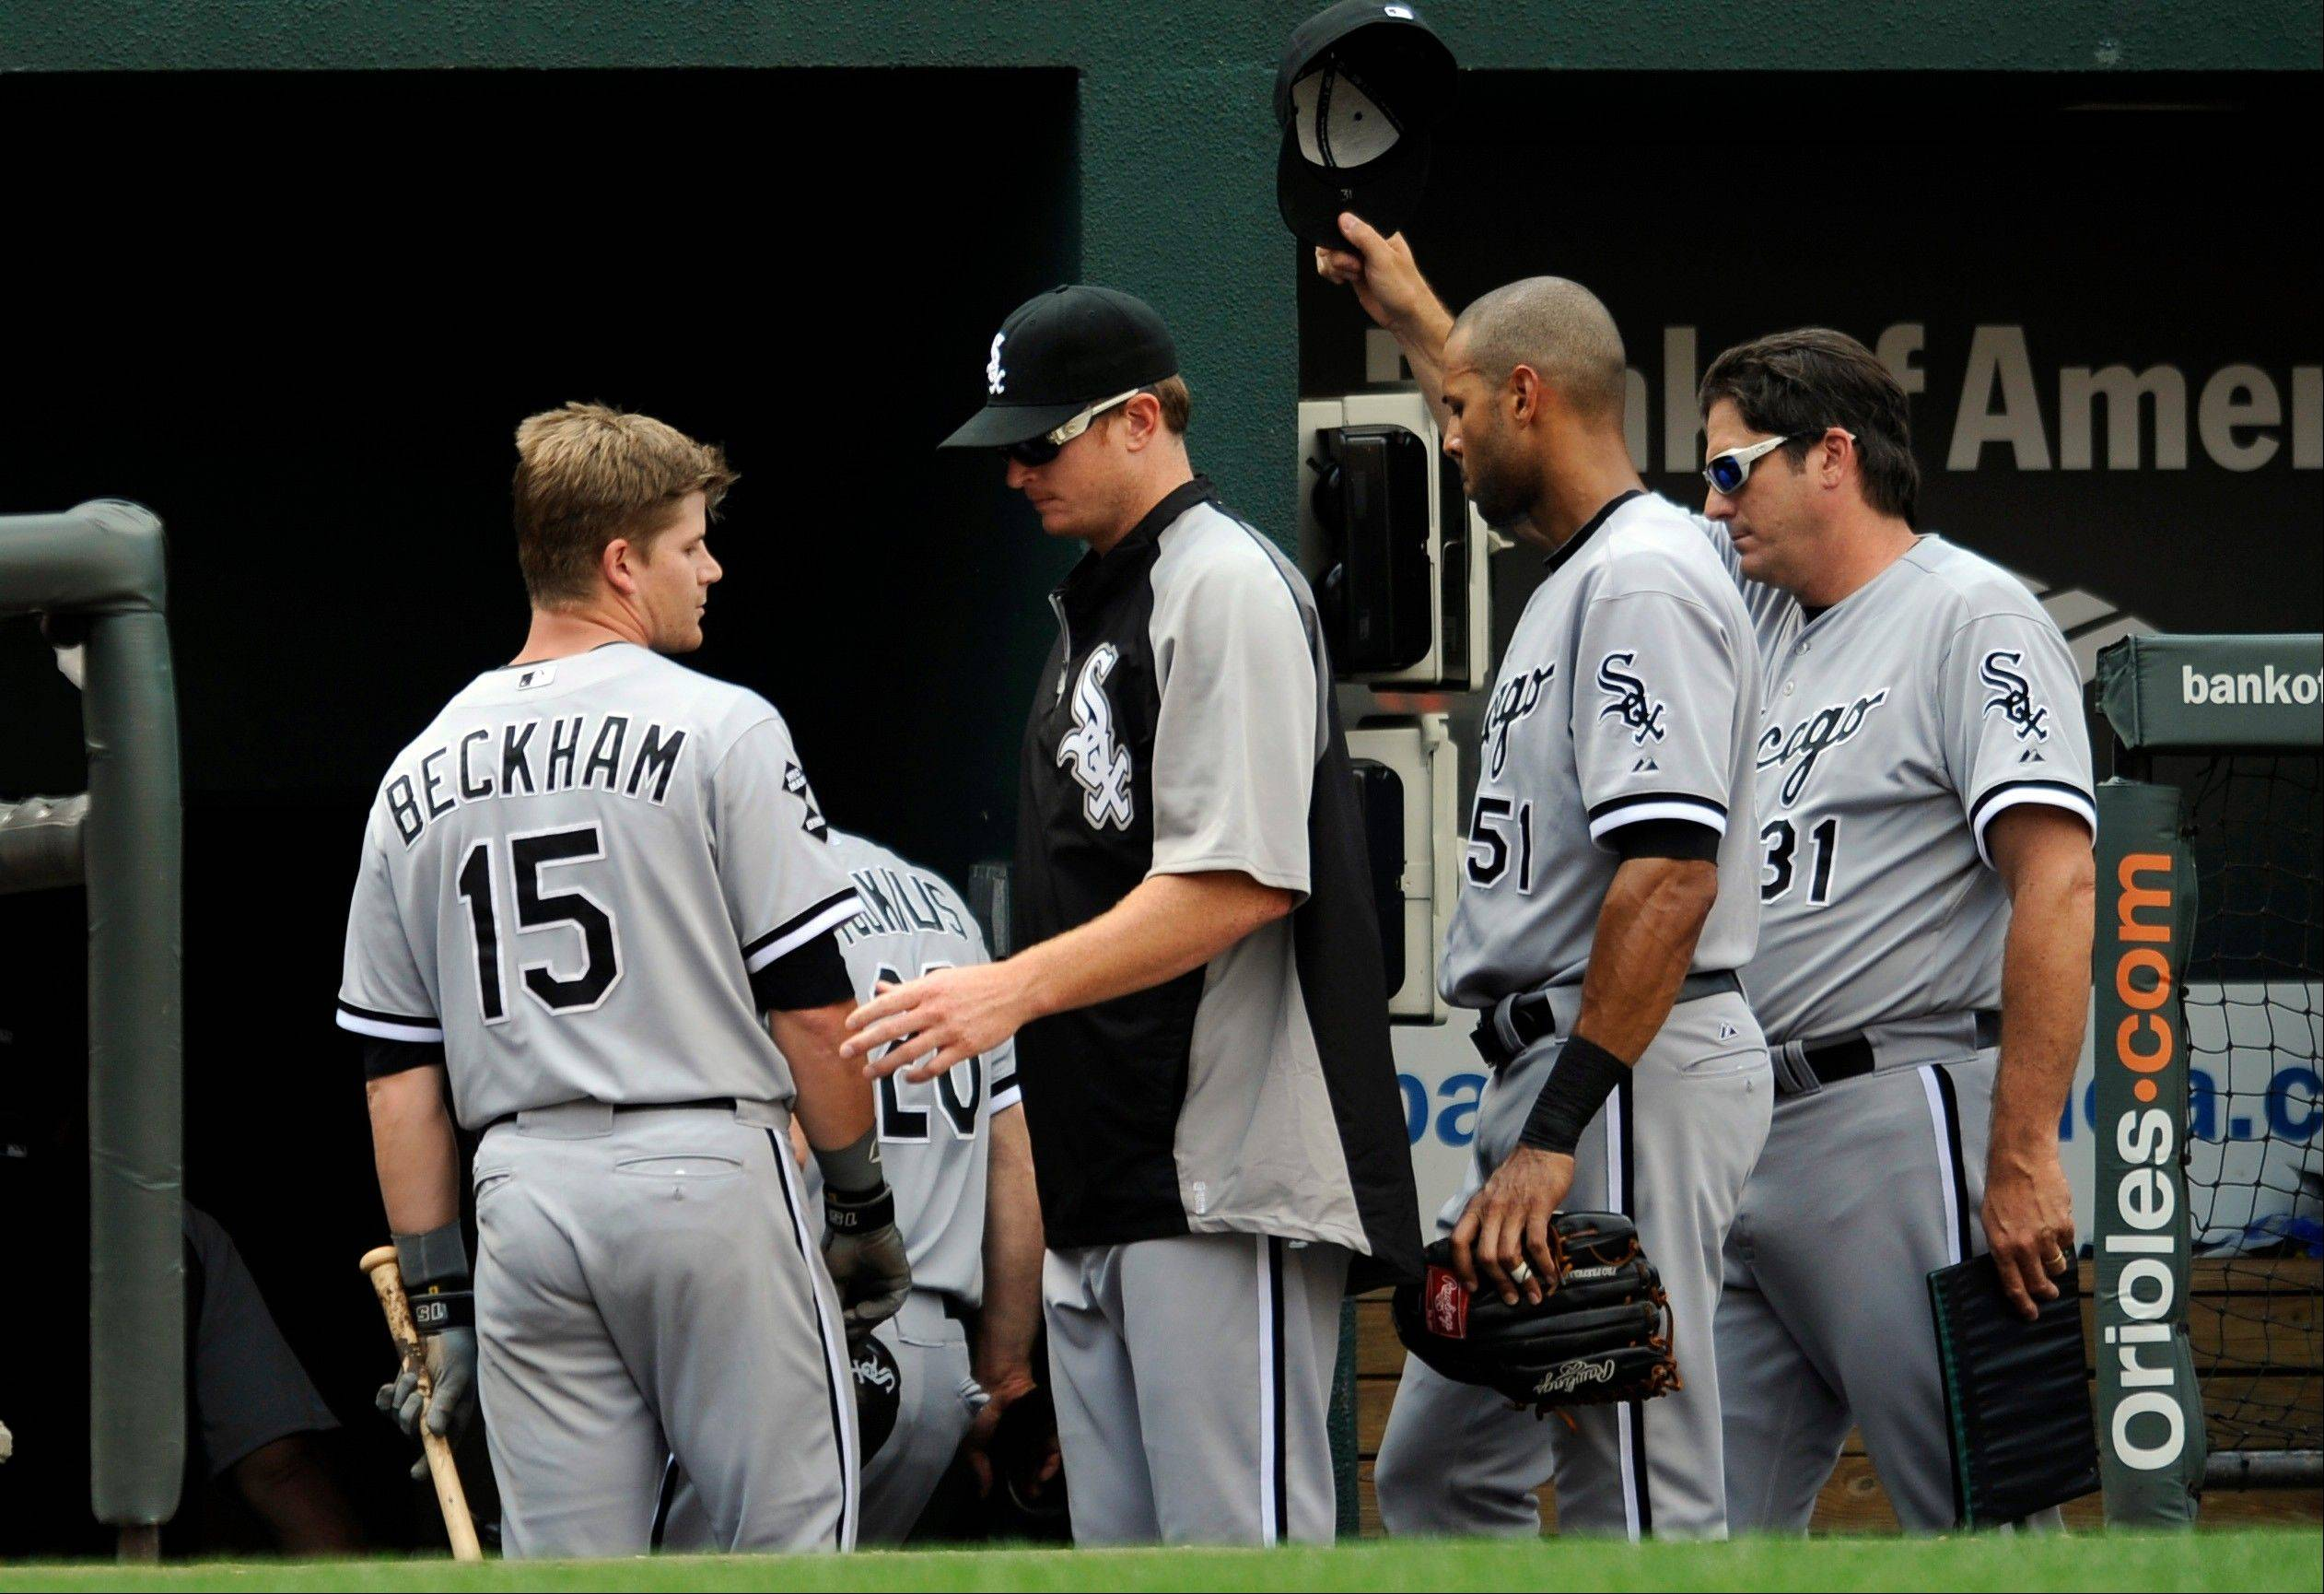 The White Sox's Gordon Beckham (15), Alex Rios (51), batting coach Jeff Manto (31) and others leave the dugout Thursday after losing to the Baltimore Orioles 5-3 in Baltimore.